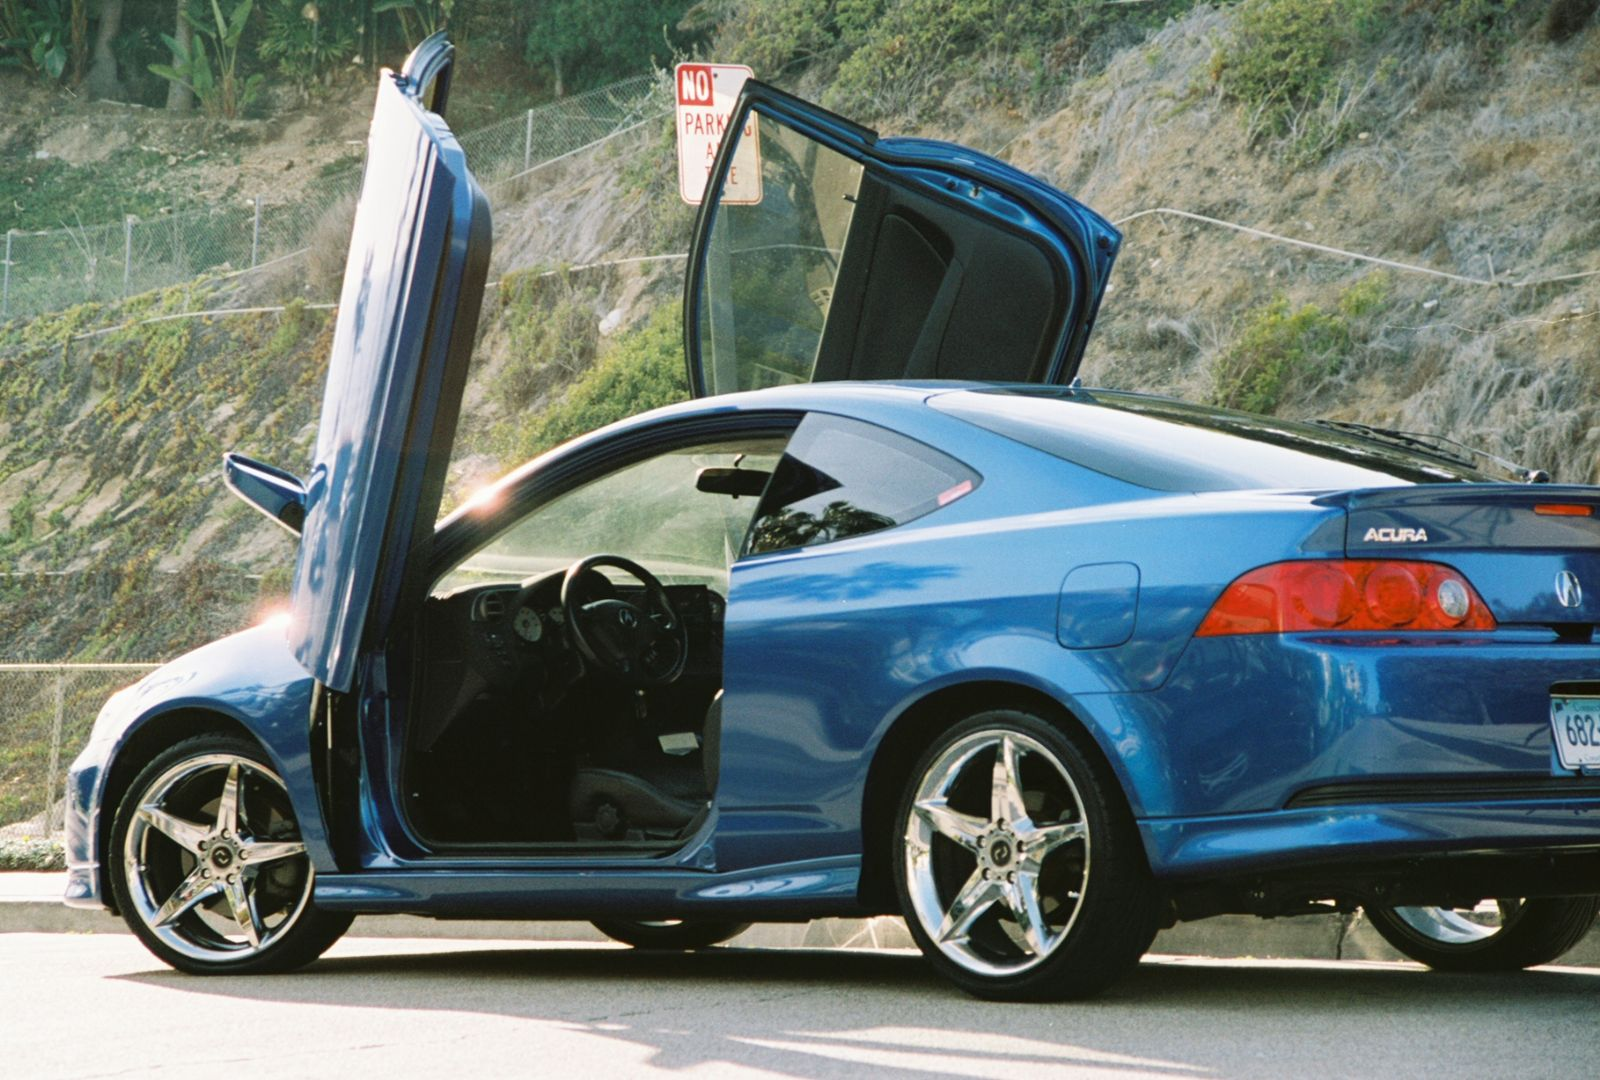 acura rsx type s engine for sale 2006 acura rsx type s for sale san diego california honda jdm. Black Bedroom Furniture Sets. Home Design Ideas